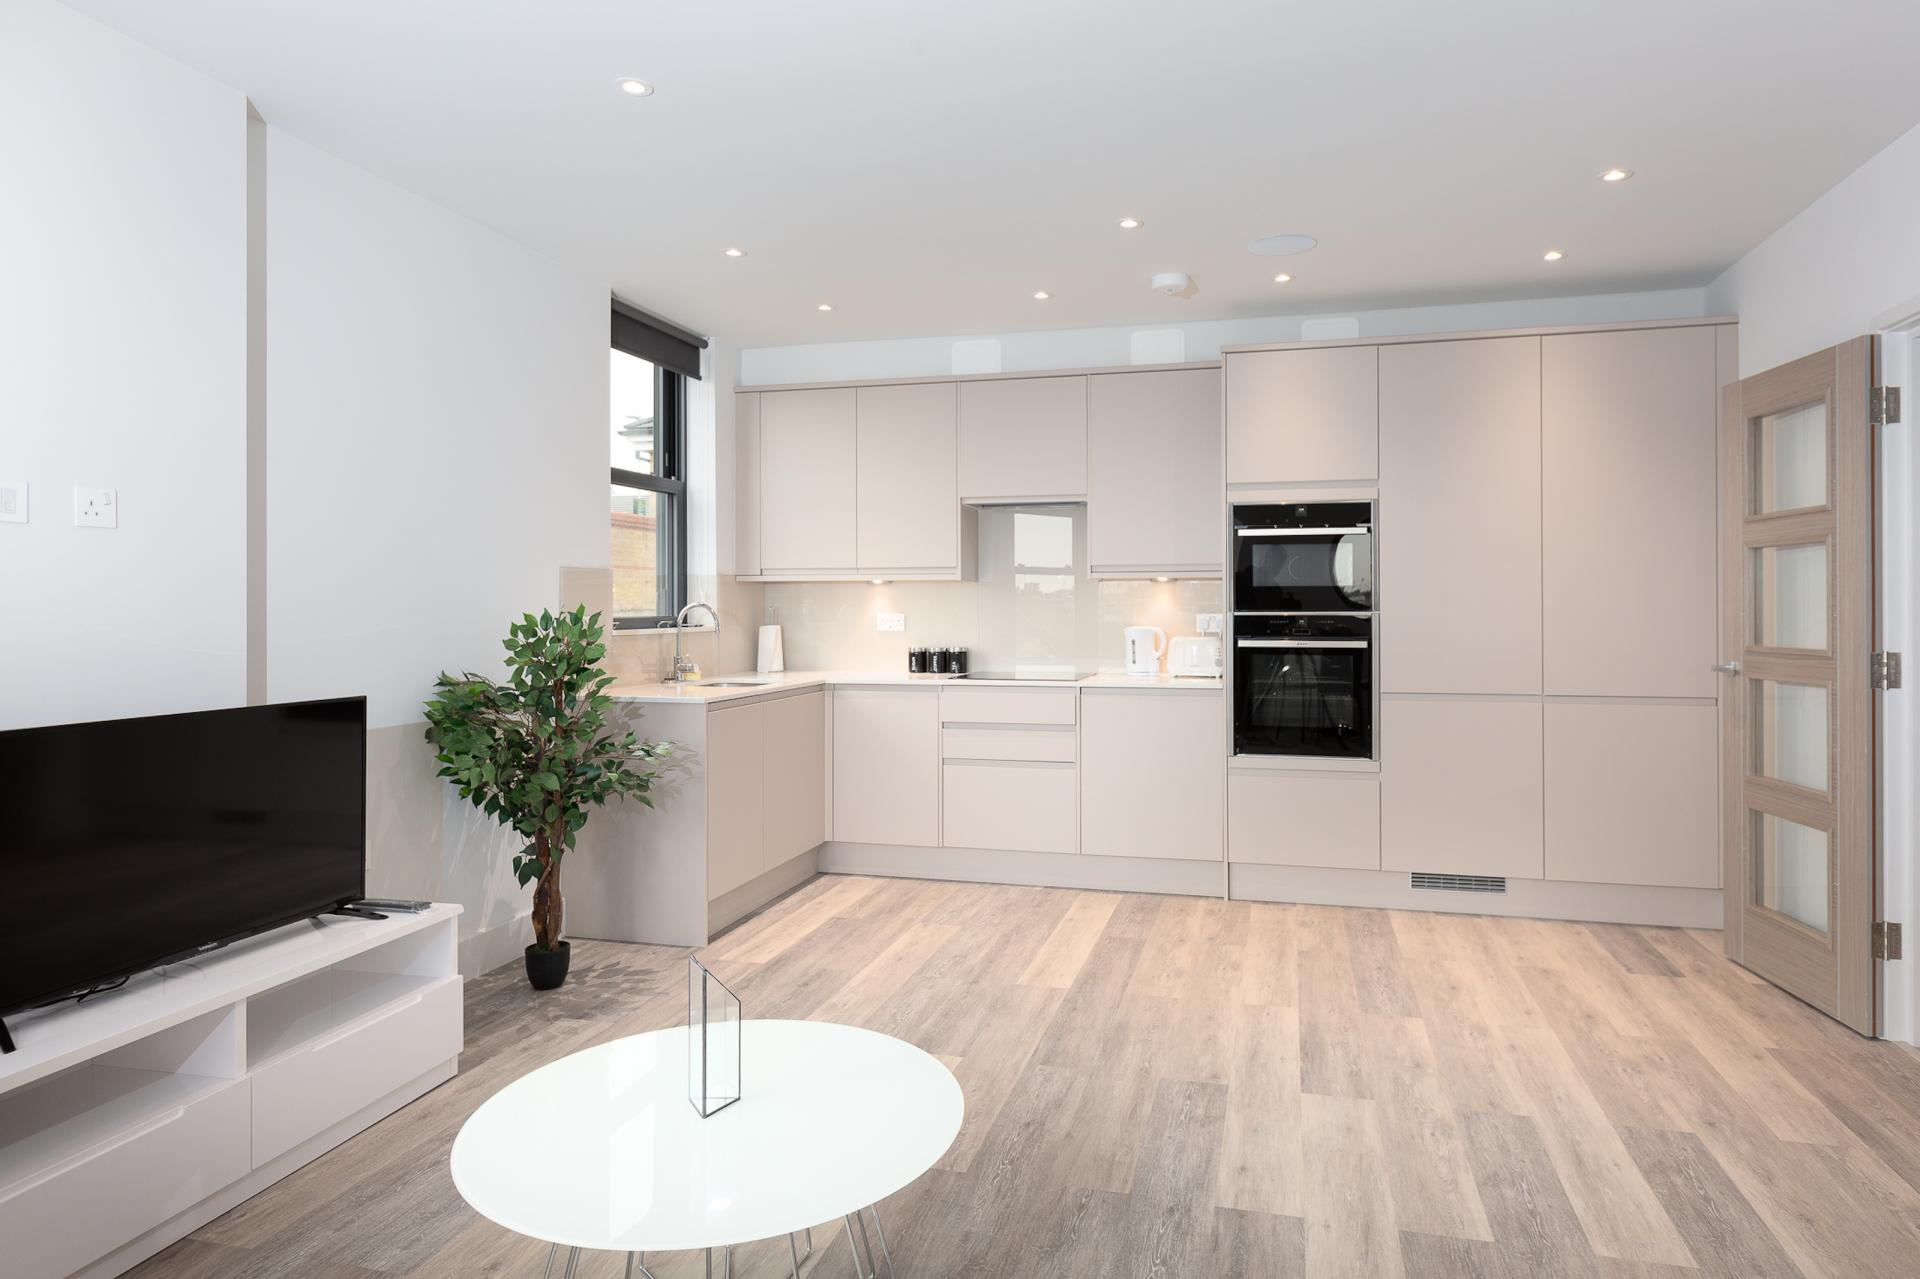 Kitchen at Fulham Serviced Apartments, Fulham, London - Citybase Apartments